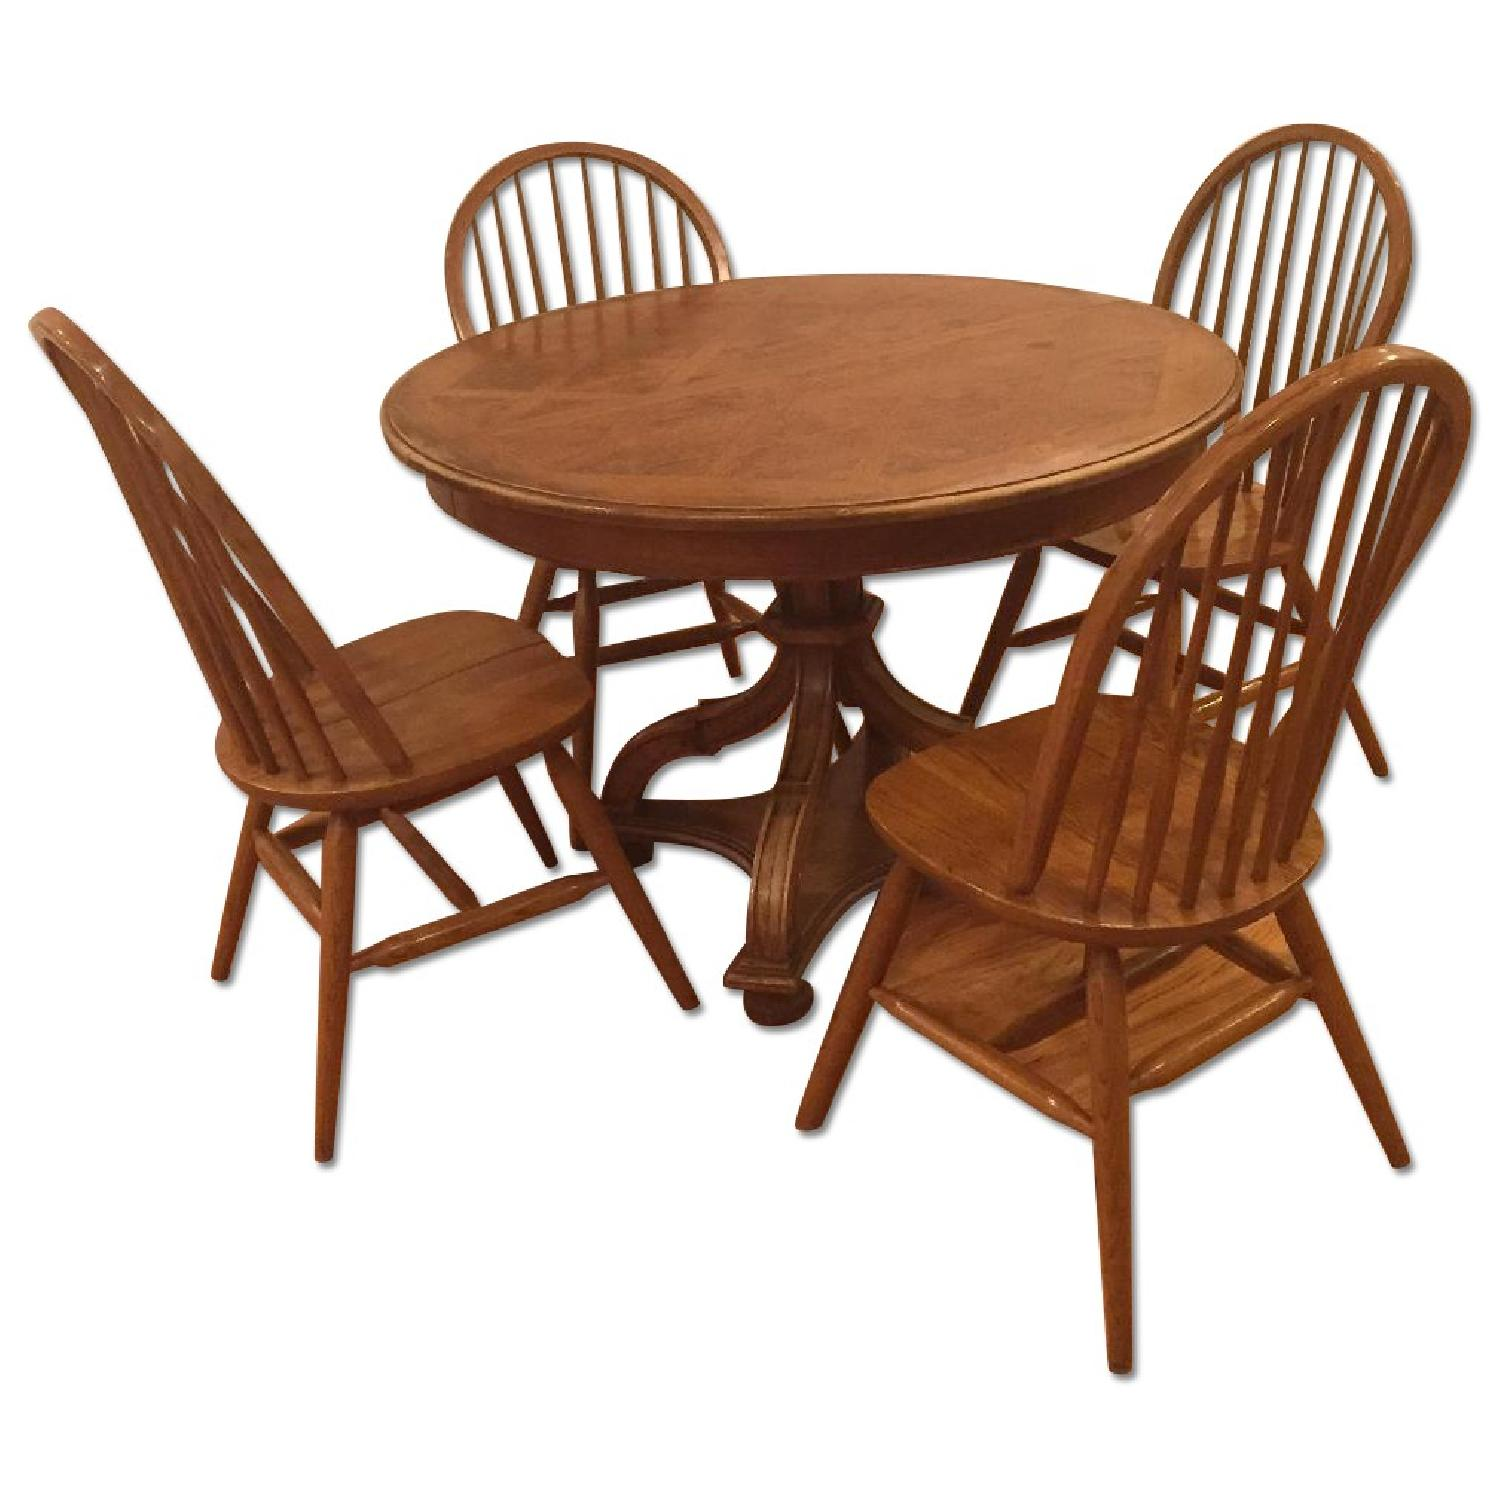 Dining Table w/ 4 Chairs - image-0